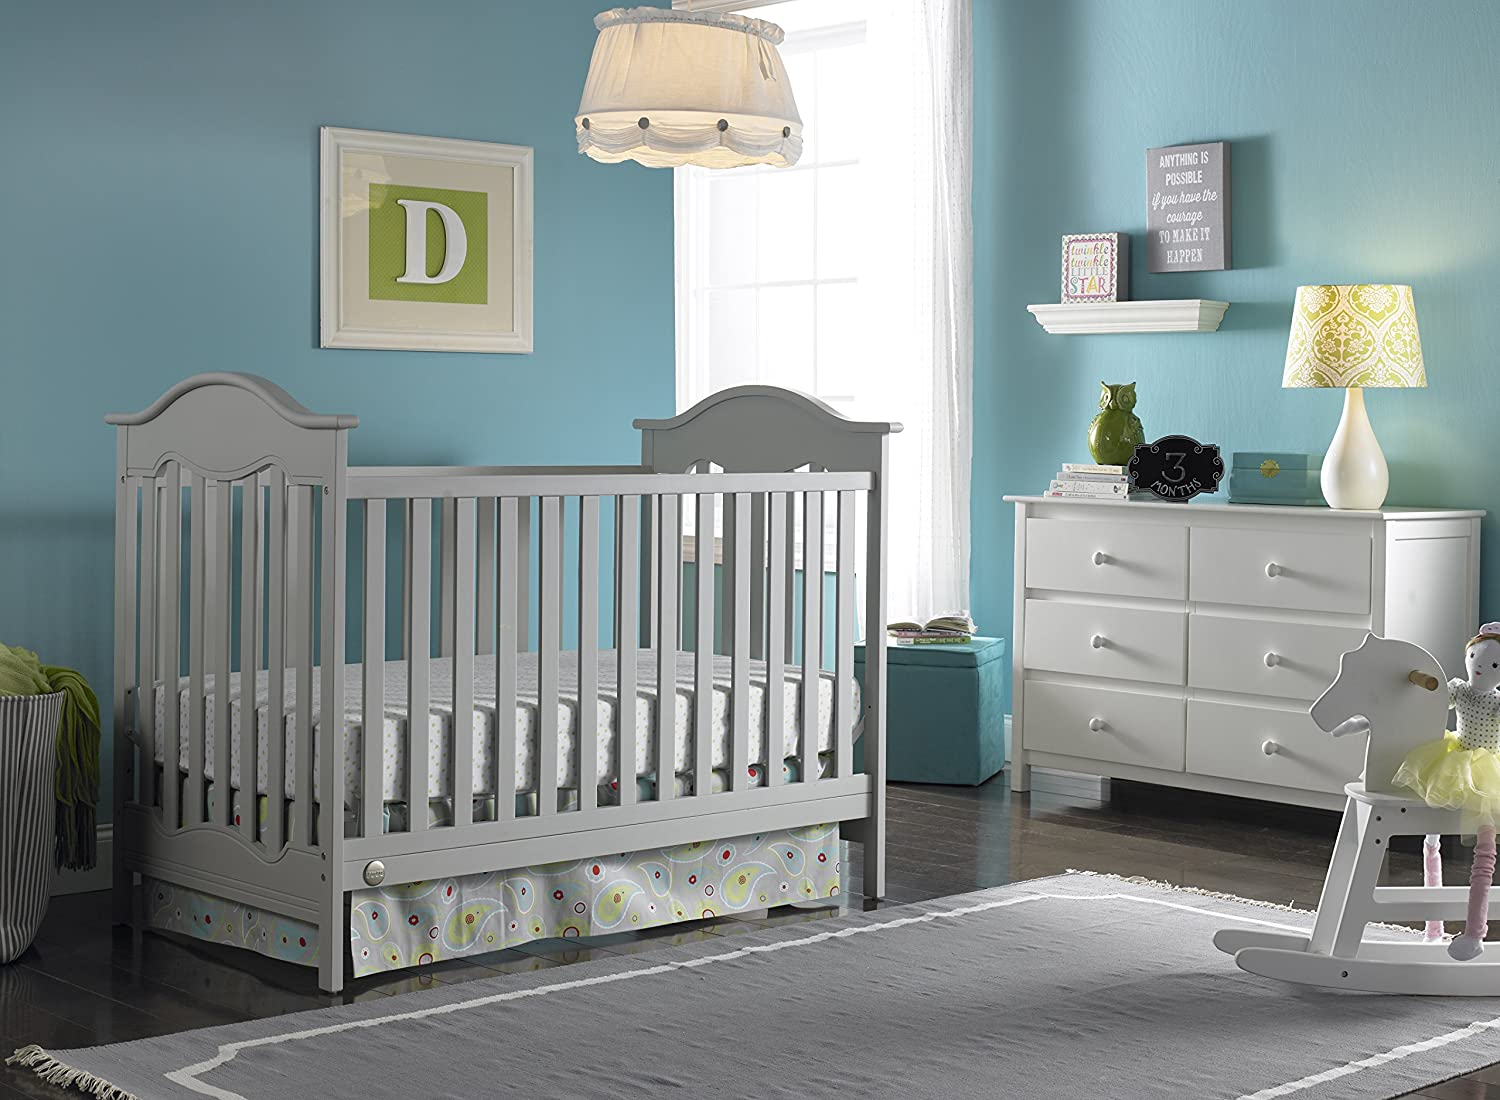 grey furniture nursery. Amazon.com : Fisher-Price Charlotte 3-in-1 Convertible Crib, Misty Grey Baby Furniture Nursery E